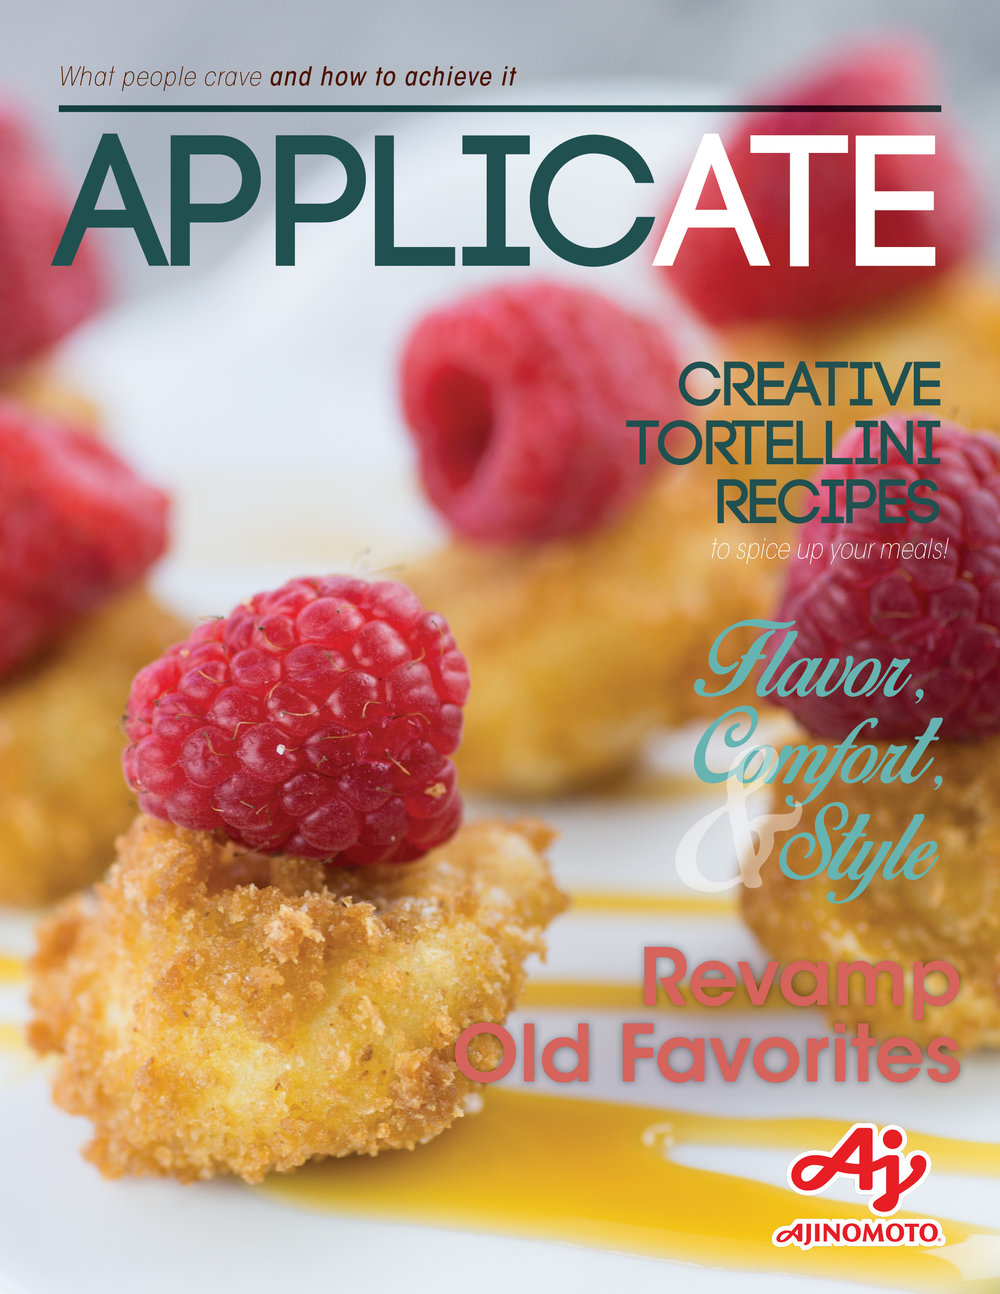 TORTELLINI APPLICATE MAGAZINE